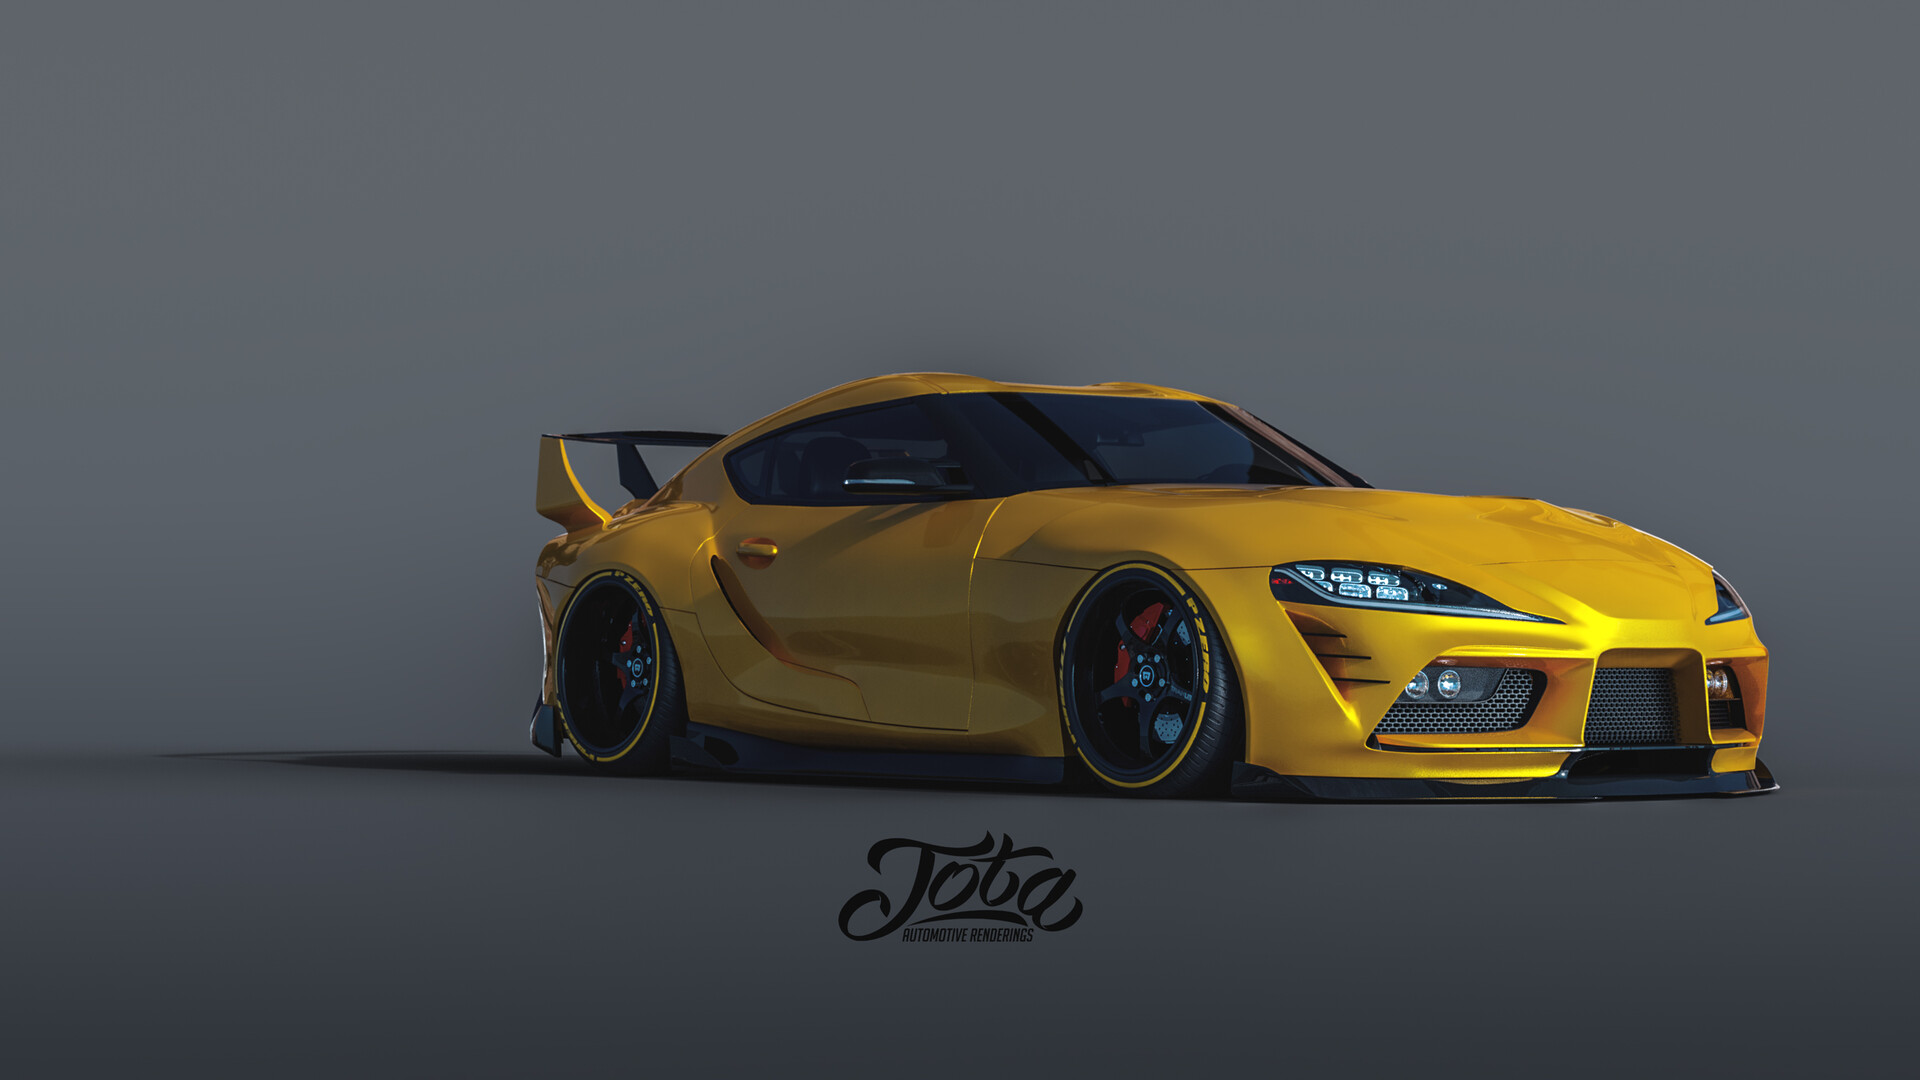 Toyota Supra 2020 Wallpapers